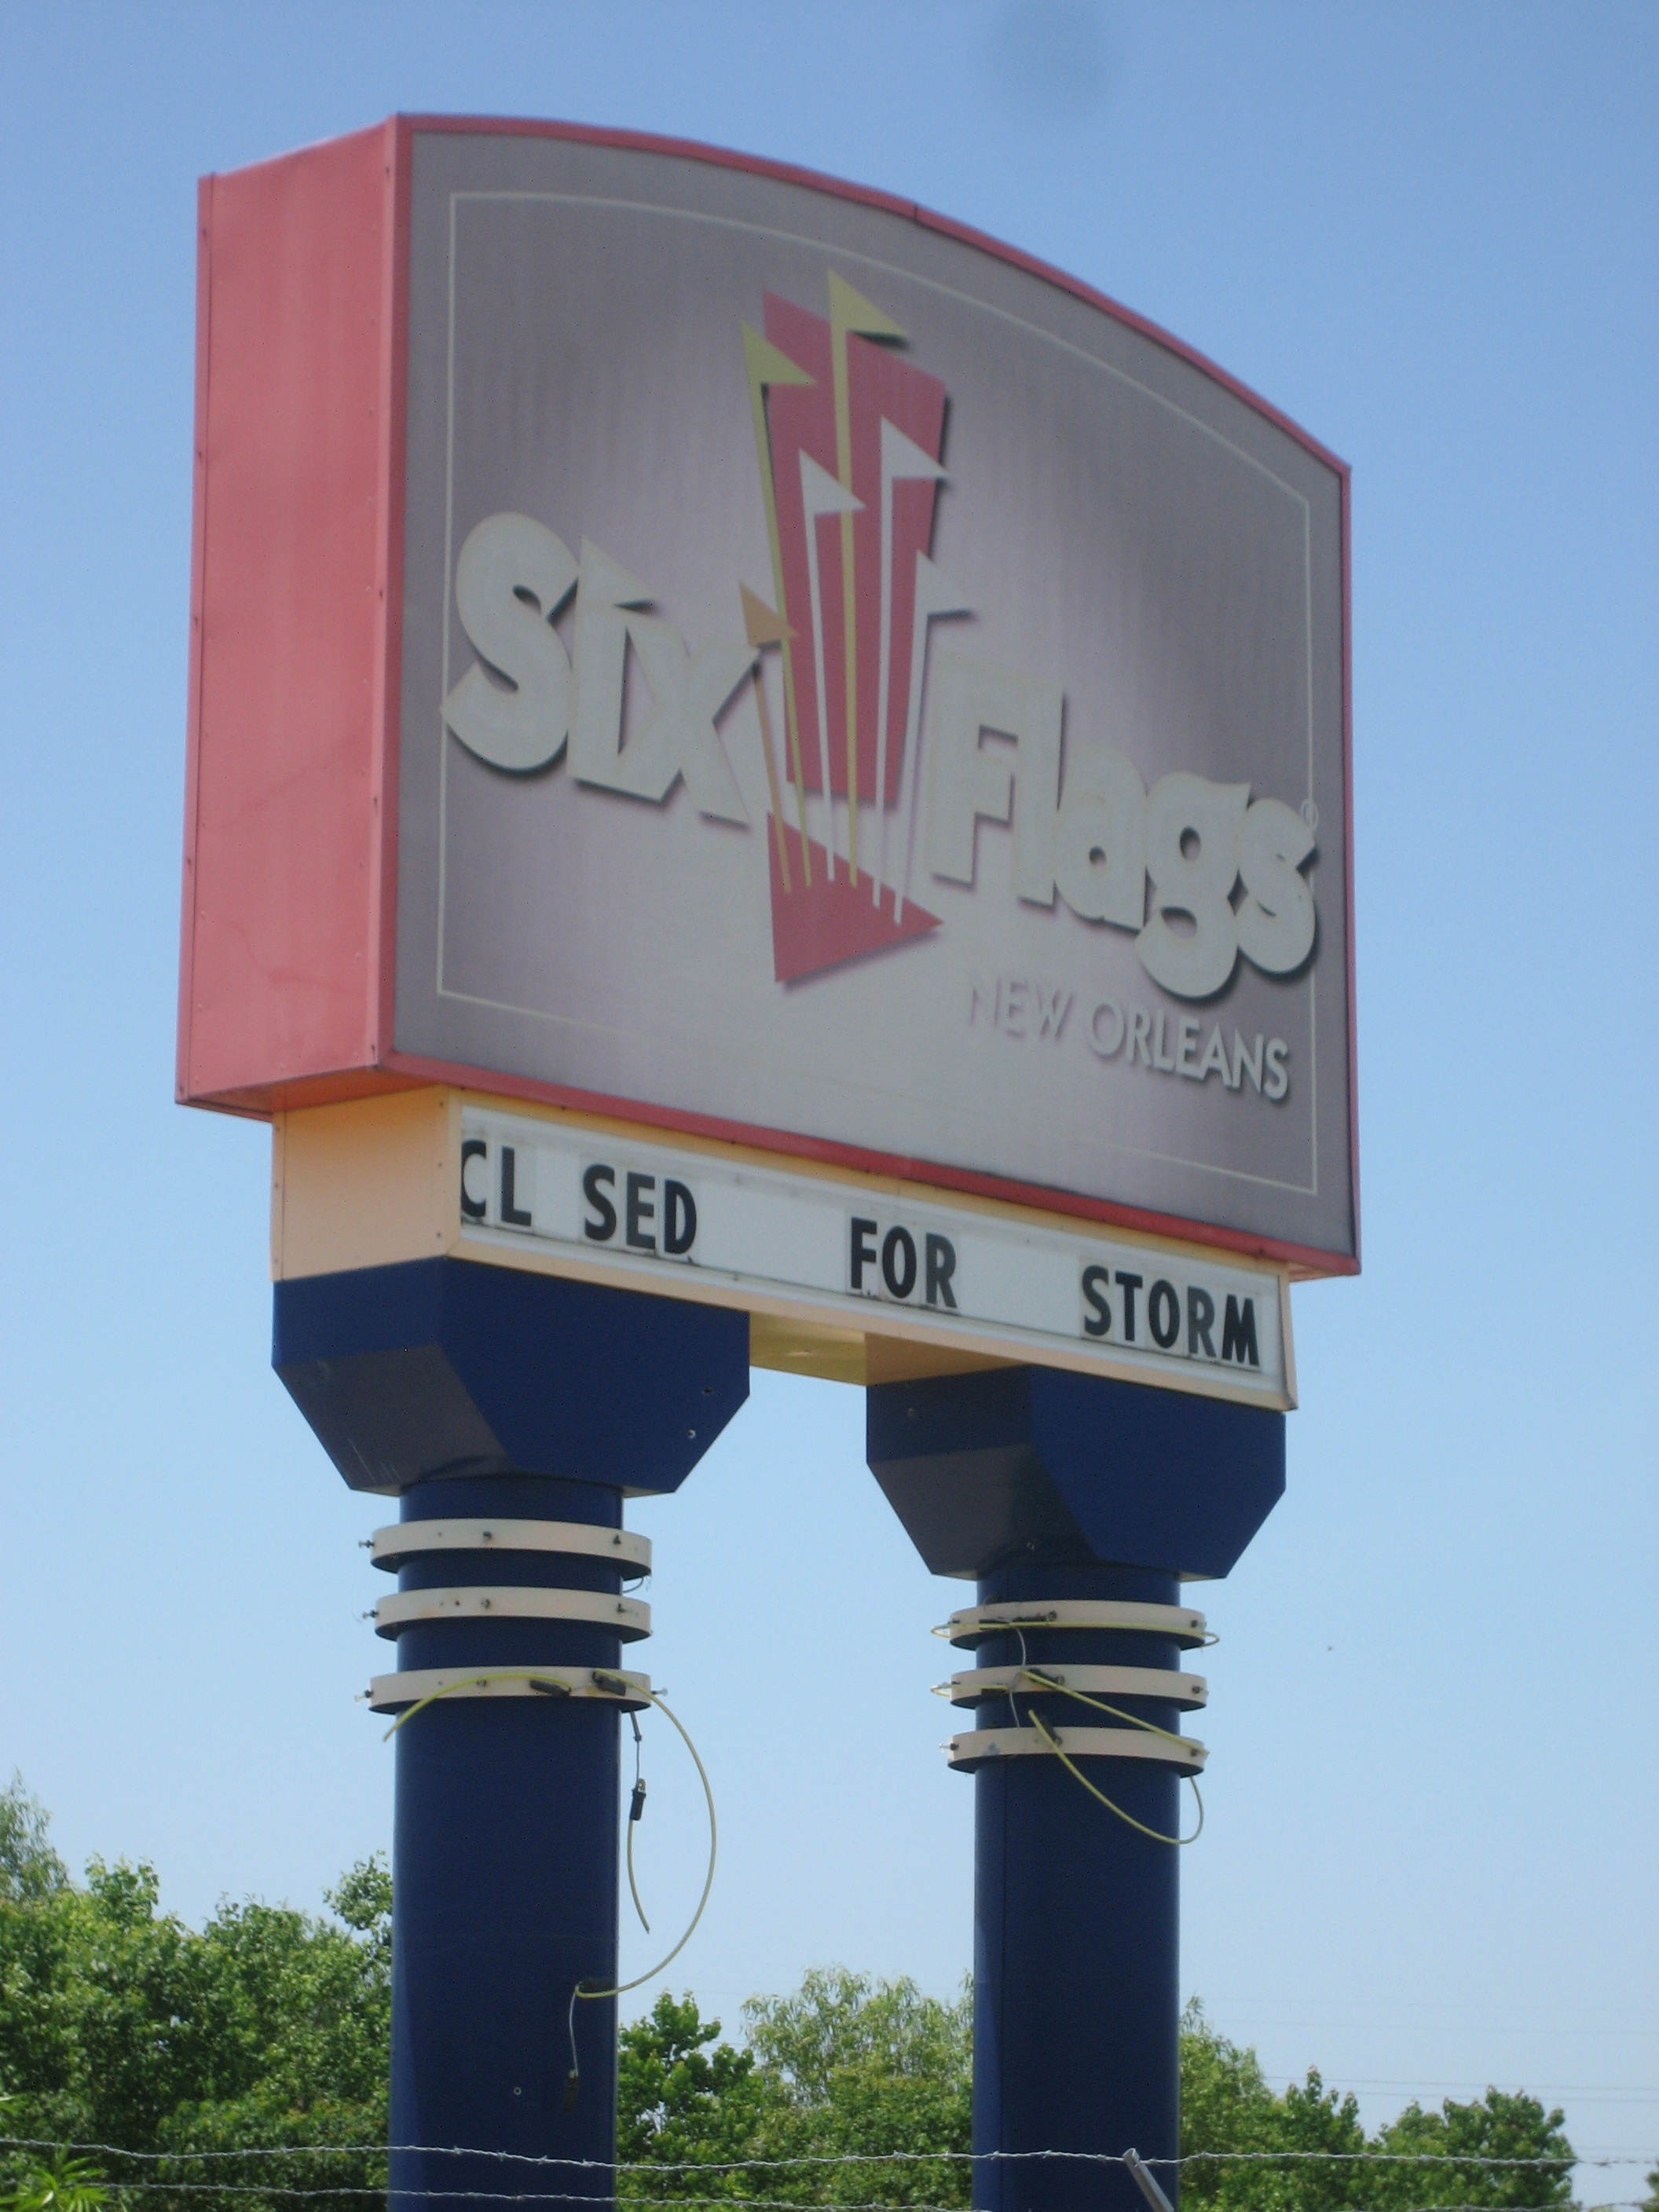 Six Flags New Orleans Wikiwand - 10 years hurricane katrina six flags theme park new orleans still lies abandoned 10 years